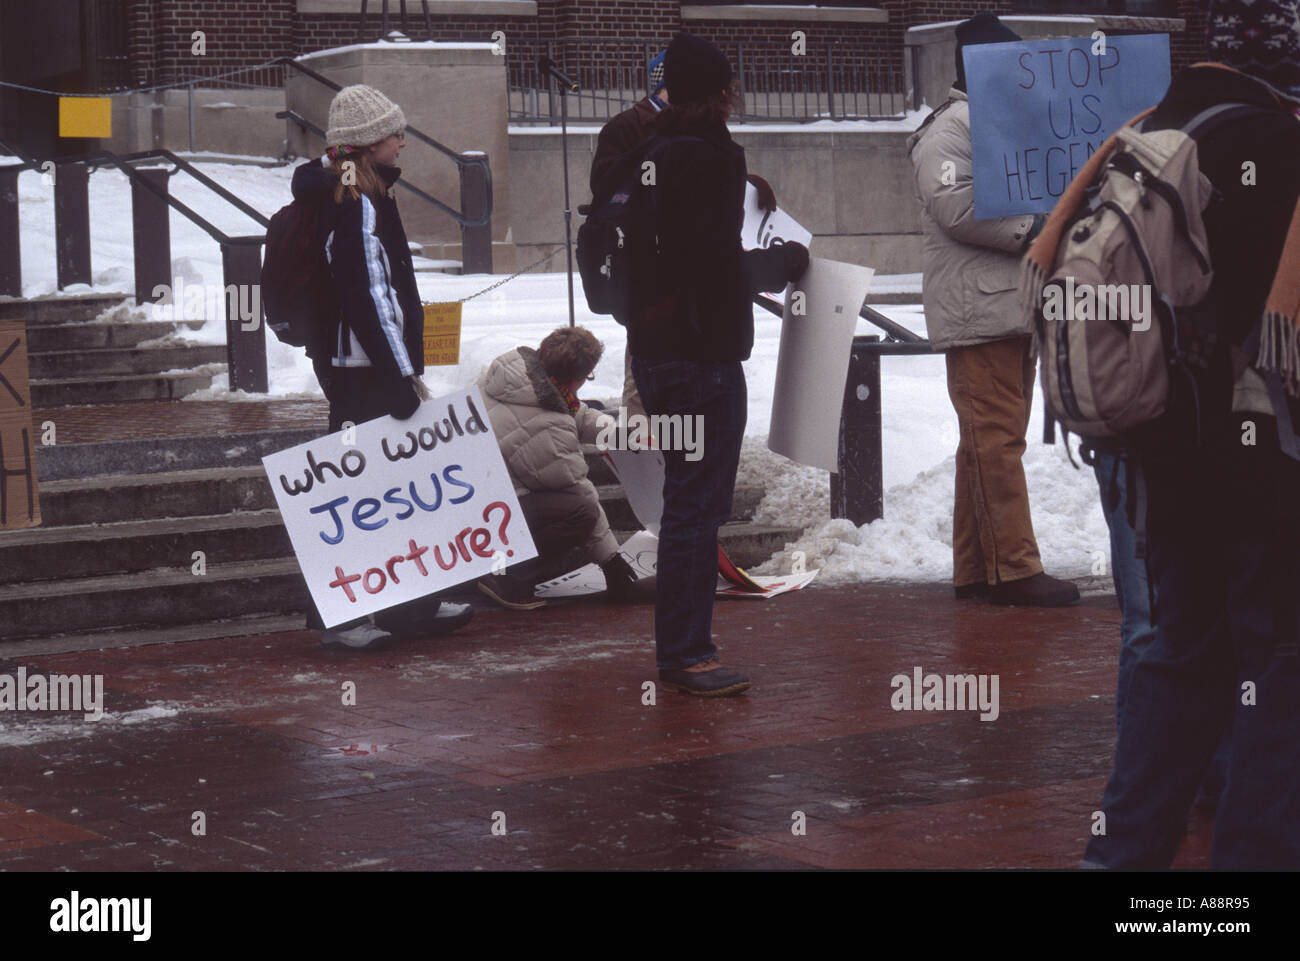 Anti Bush demonstrators - Stock Image